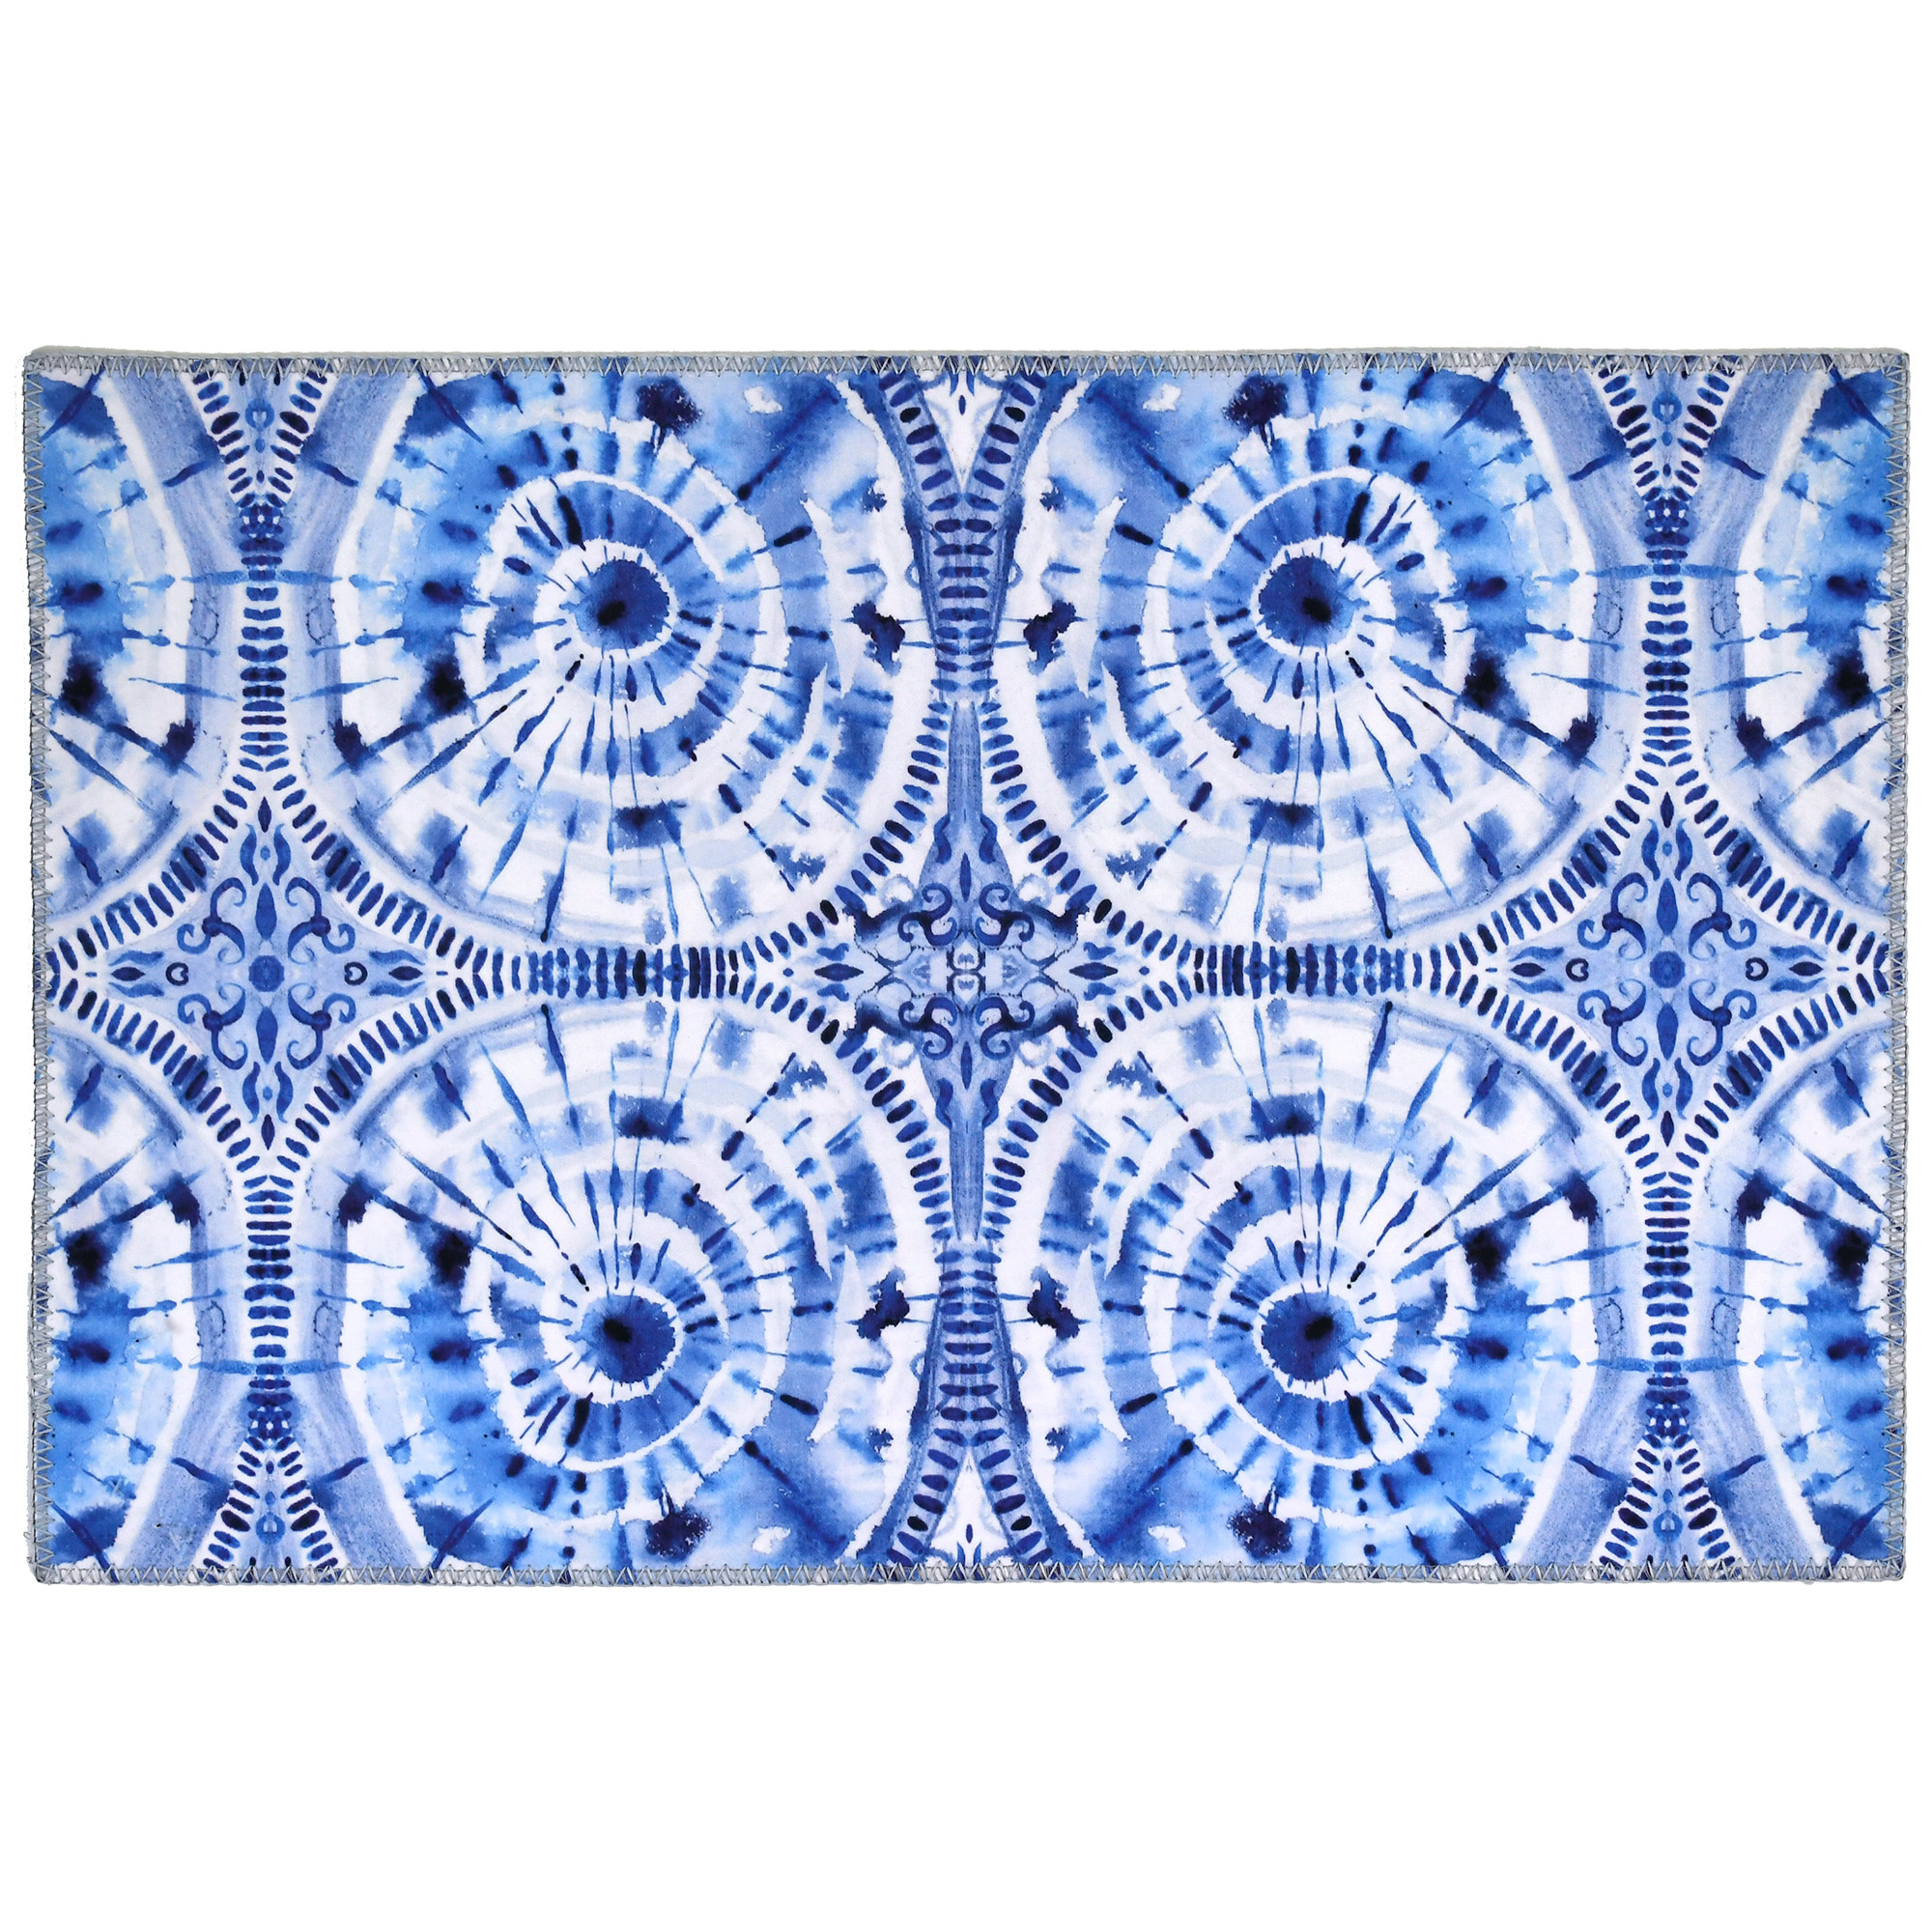 "Japanese shibori inspiration by Audrey Jean Roberts leads to an intricate blue and white design. Homefires by Jellybean® offers an innovative approach to floor coverings with poly-suede floor cloths. Machine washable printed polyester available in four sizes offers a decorative floor cloth, thin enough to slide tables and chairs with ease. Available sizes: 20"" x 30"", 3' x 5', 5' x 7', and 21"" x 54"""